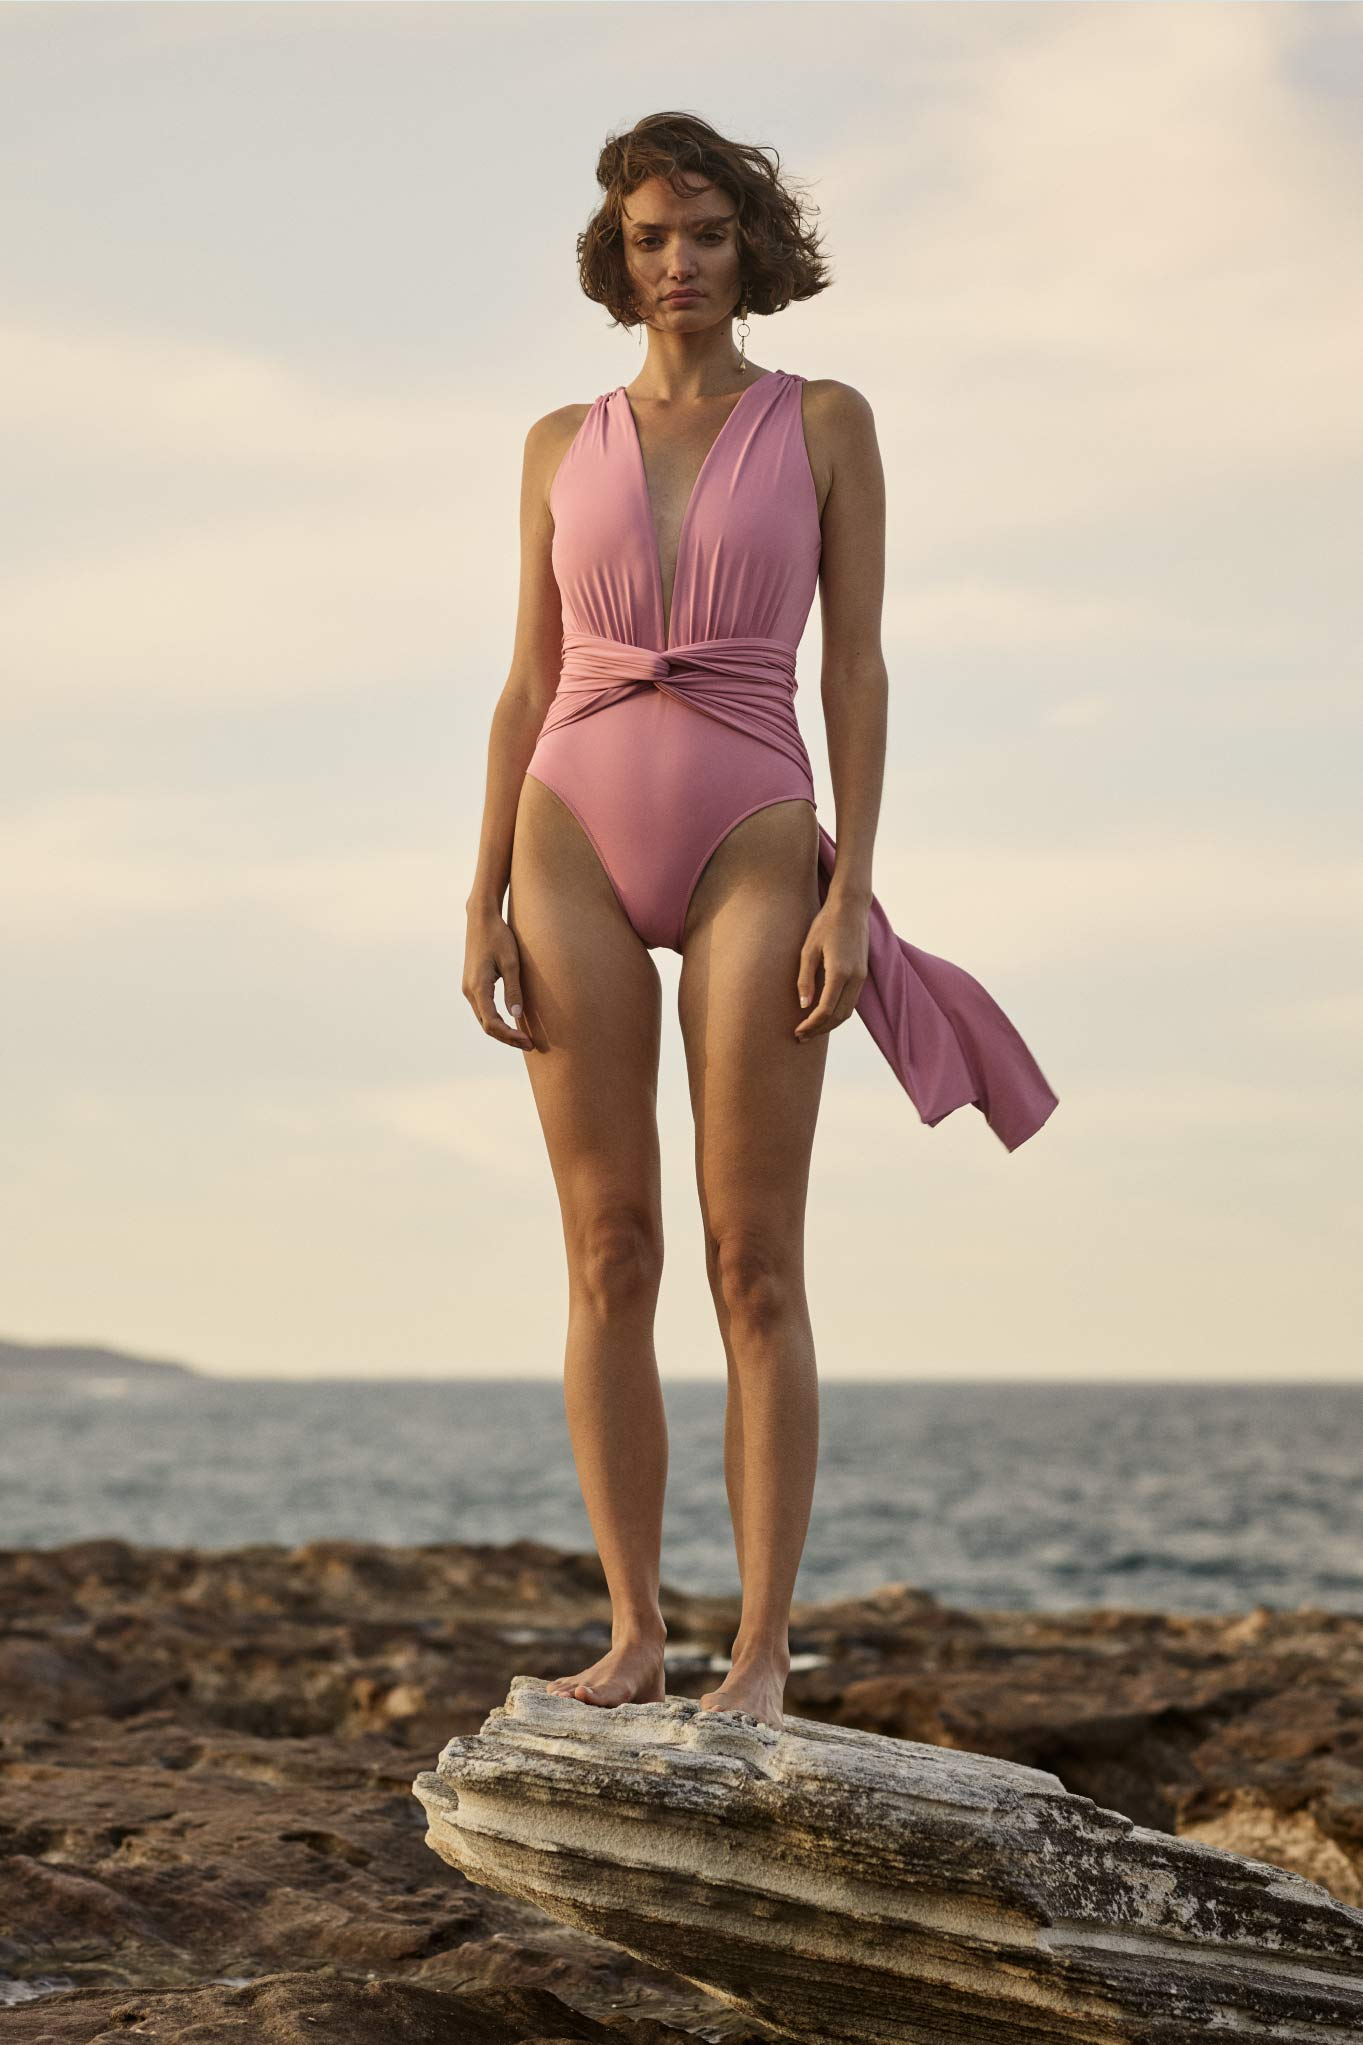 BONDI BORN Resort 20 Knots Collection uses luxury Italian fabrics that are sustainably produced. All swimsuits are made in Australia.